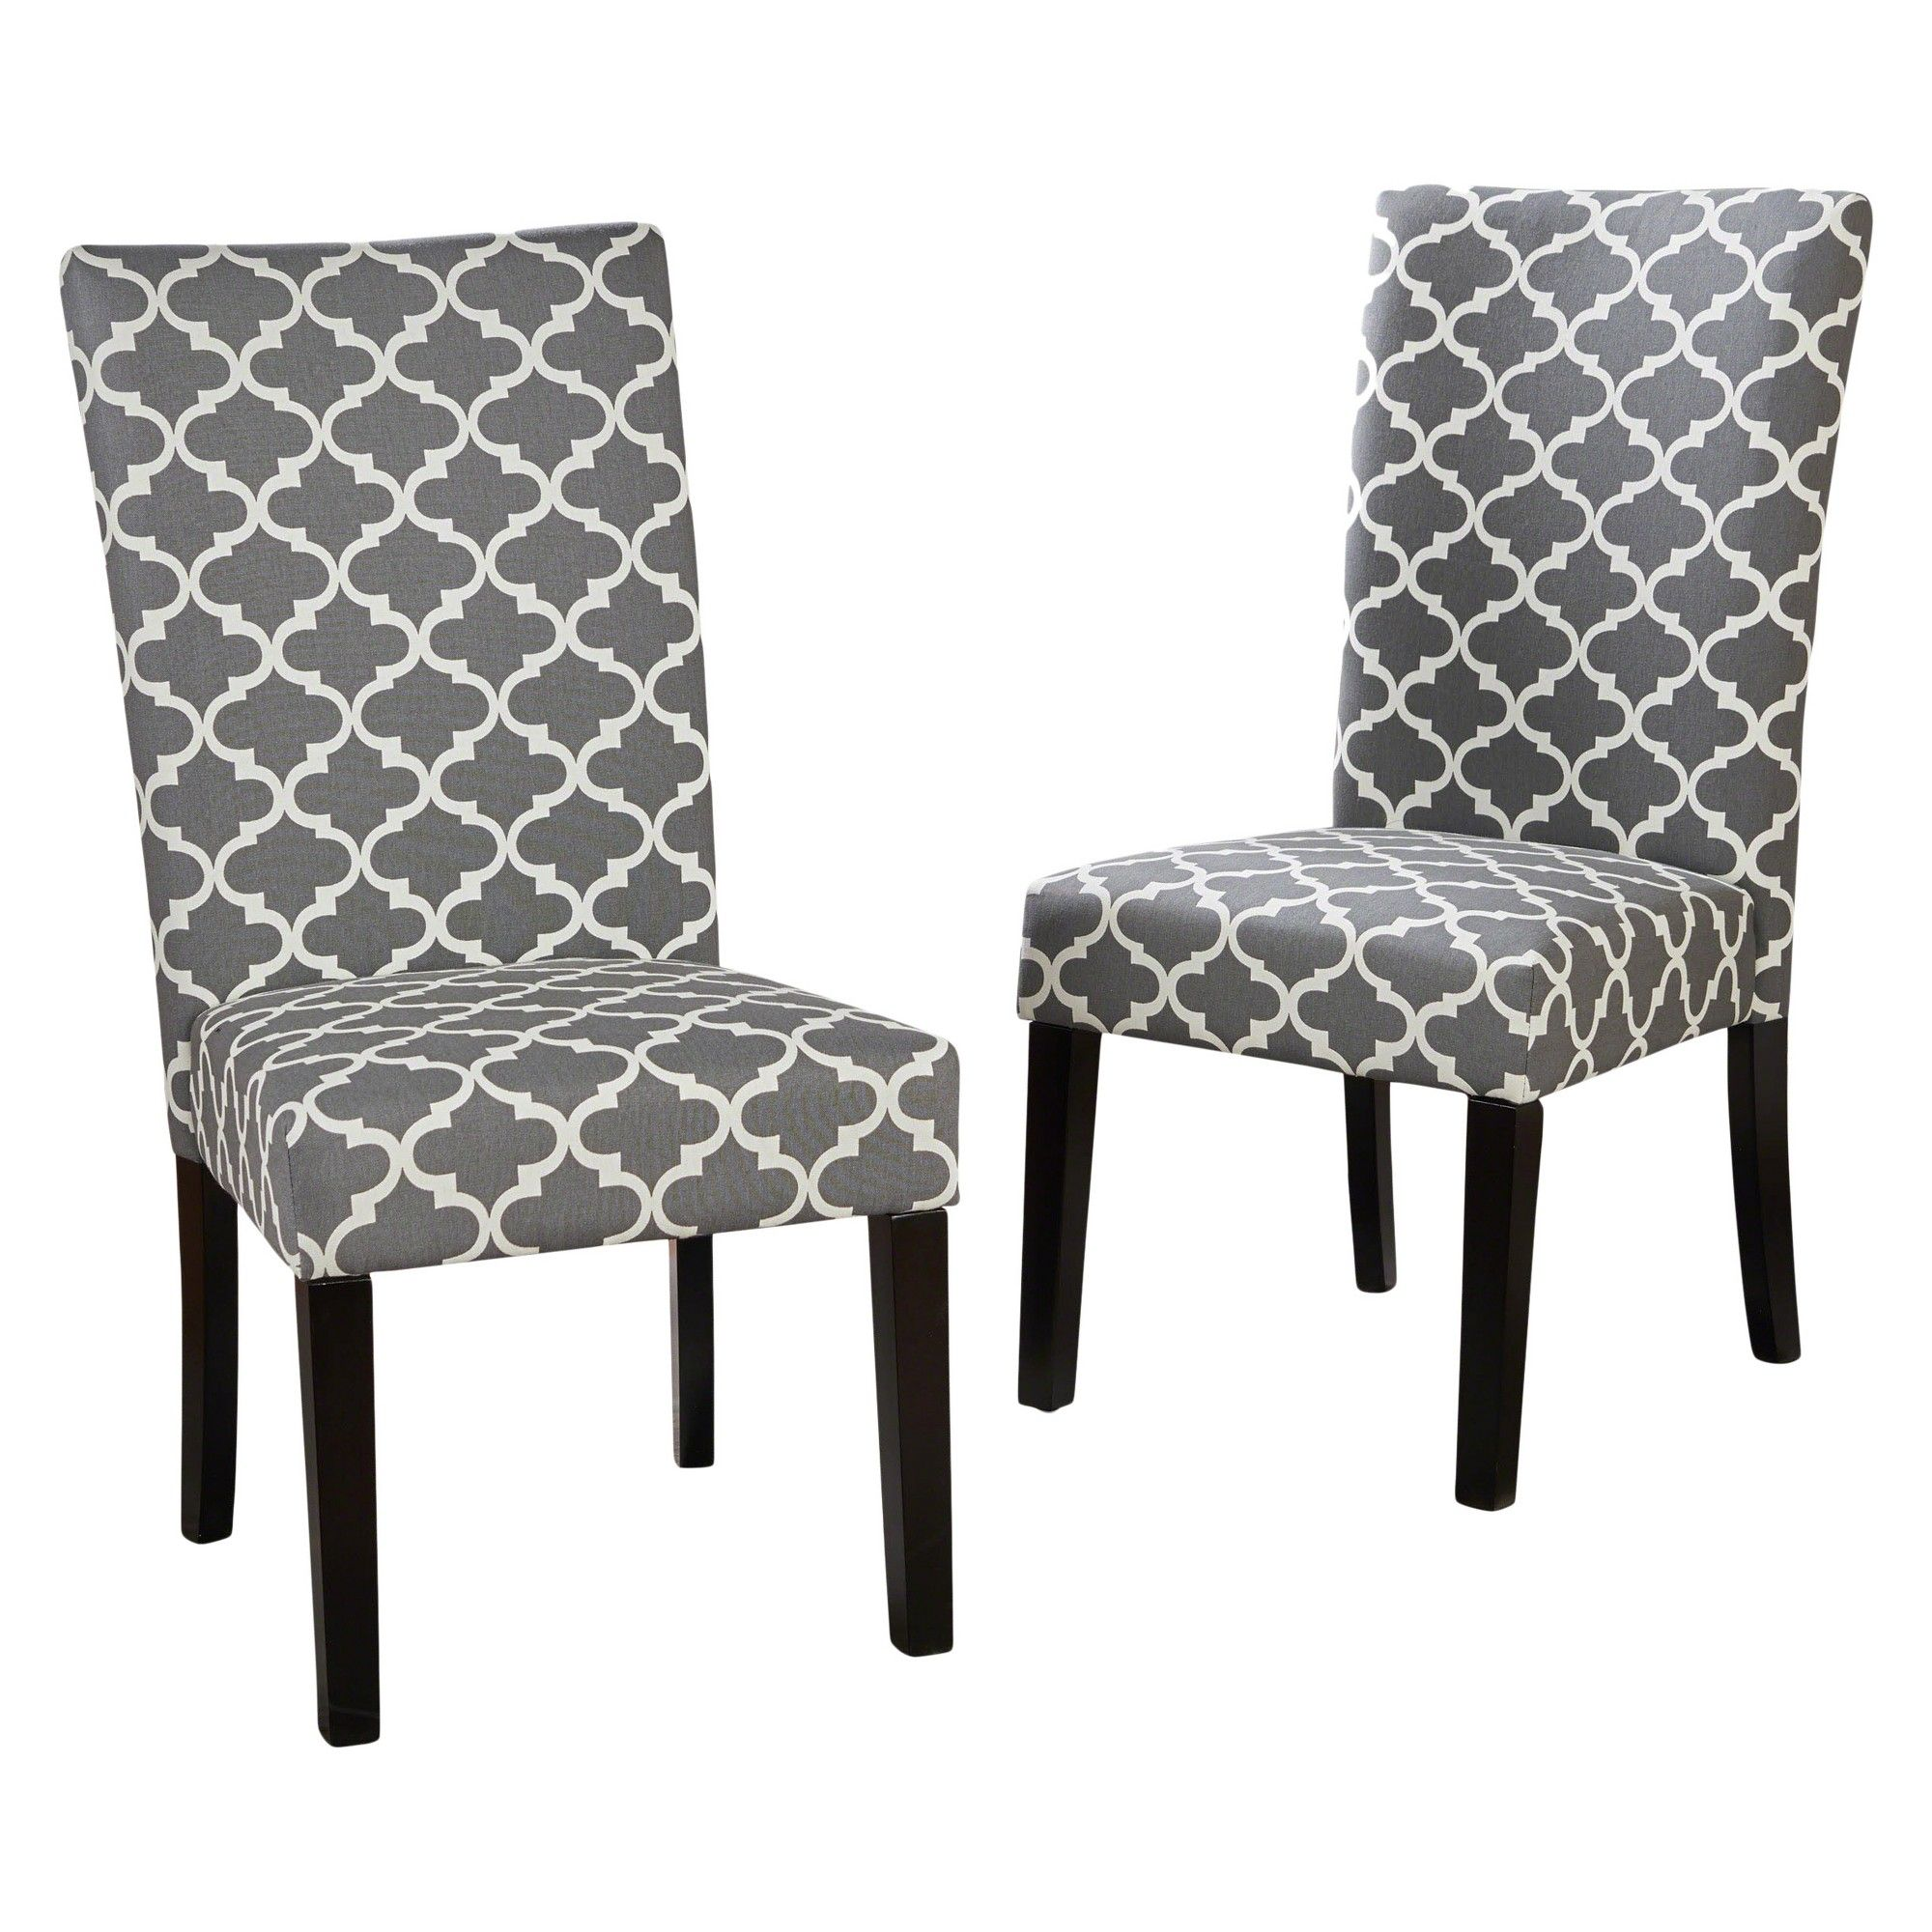 Aurora Fabric Geometric Print Dining Chair Gray Set Of 2 Christopher Knight Home Fabric Dining Chairs Dining Chairs Dining Chair Set